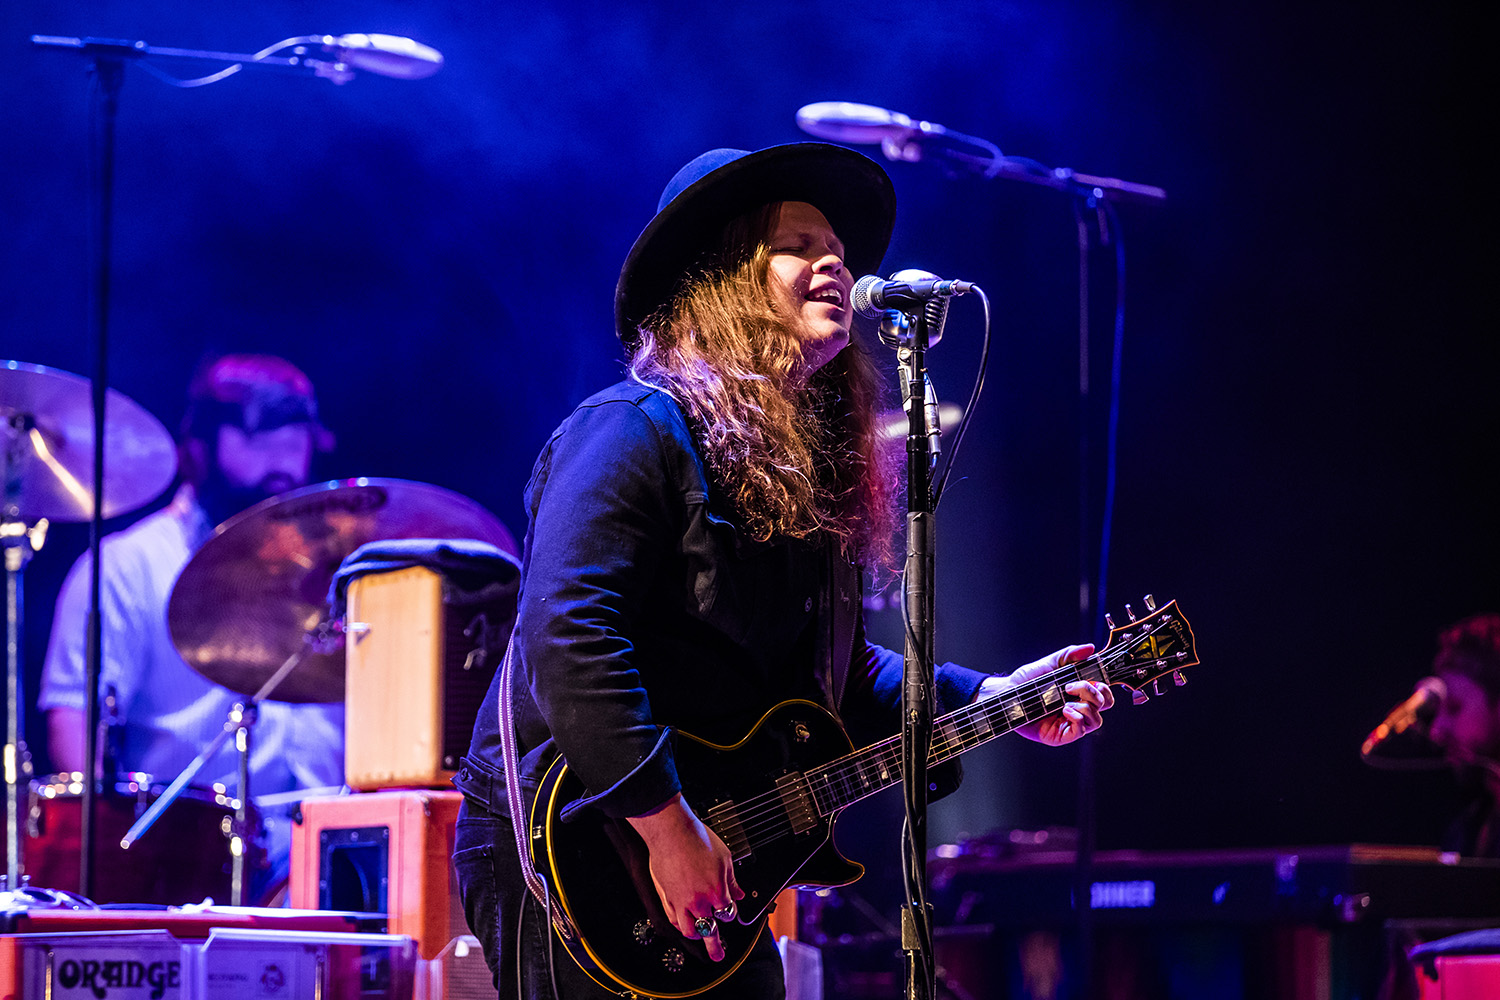 The Marcus King Band performs at the Englert Theatre on Thursday, November 21, 2019. King is a fourth-generation musician and is traveling with his band on their